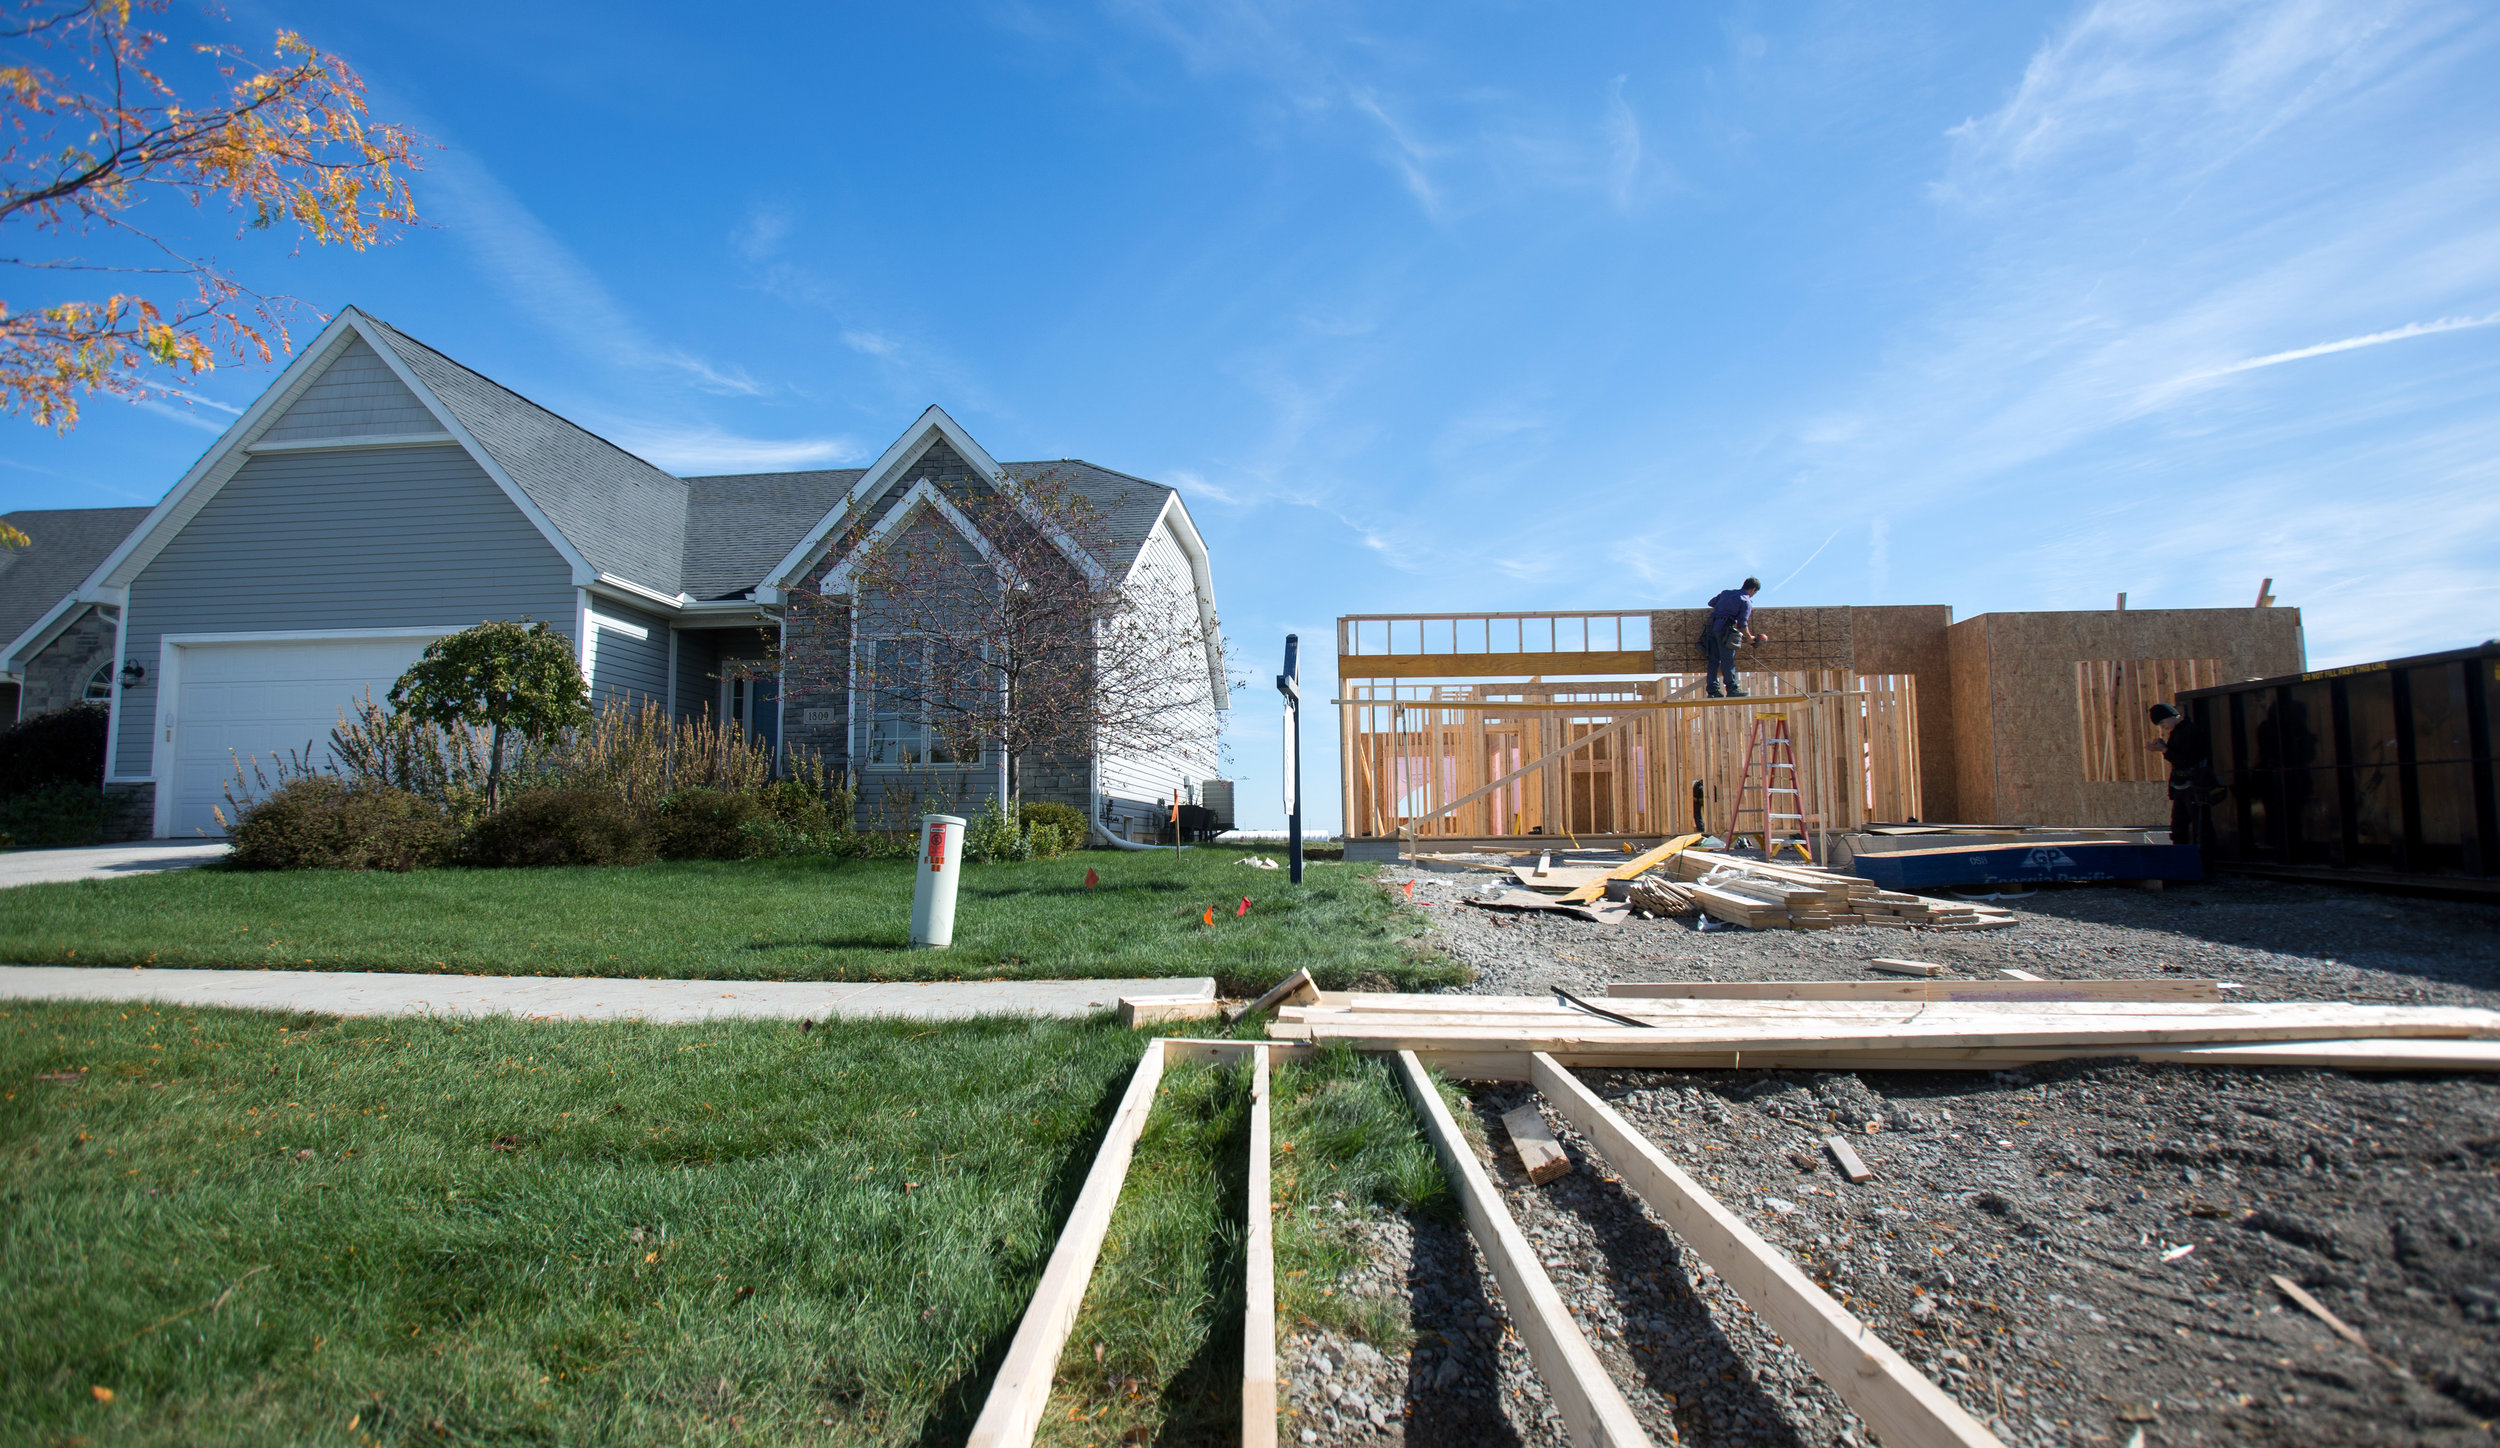 Brett Wickey of Spencerville works on the front of a house under construction in the Rivers Edge sub division on Hidden Ridge drive in Perrysburg on Tuesday, Oct. 25, 2016.